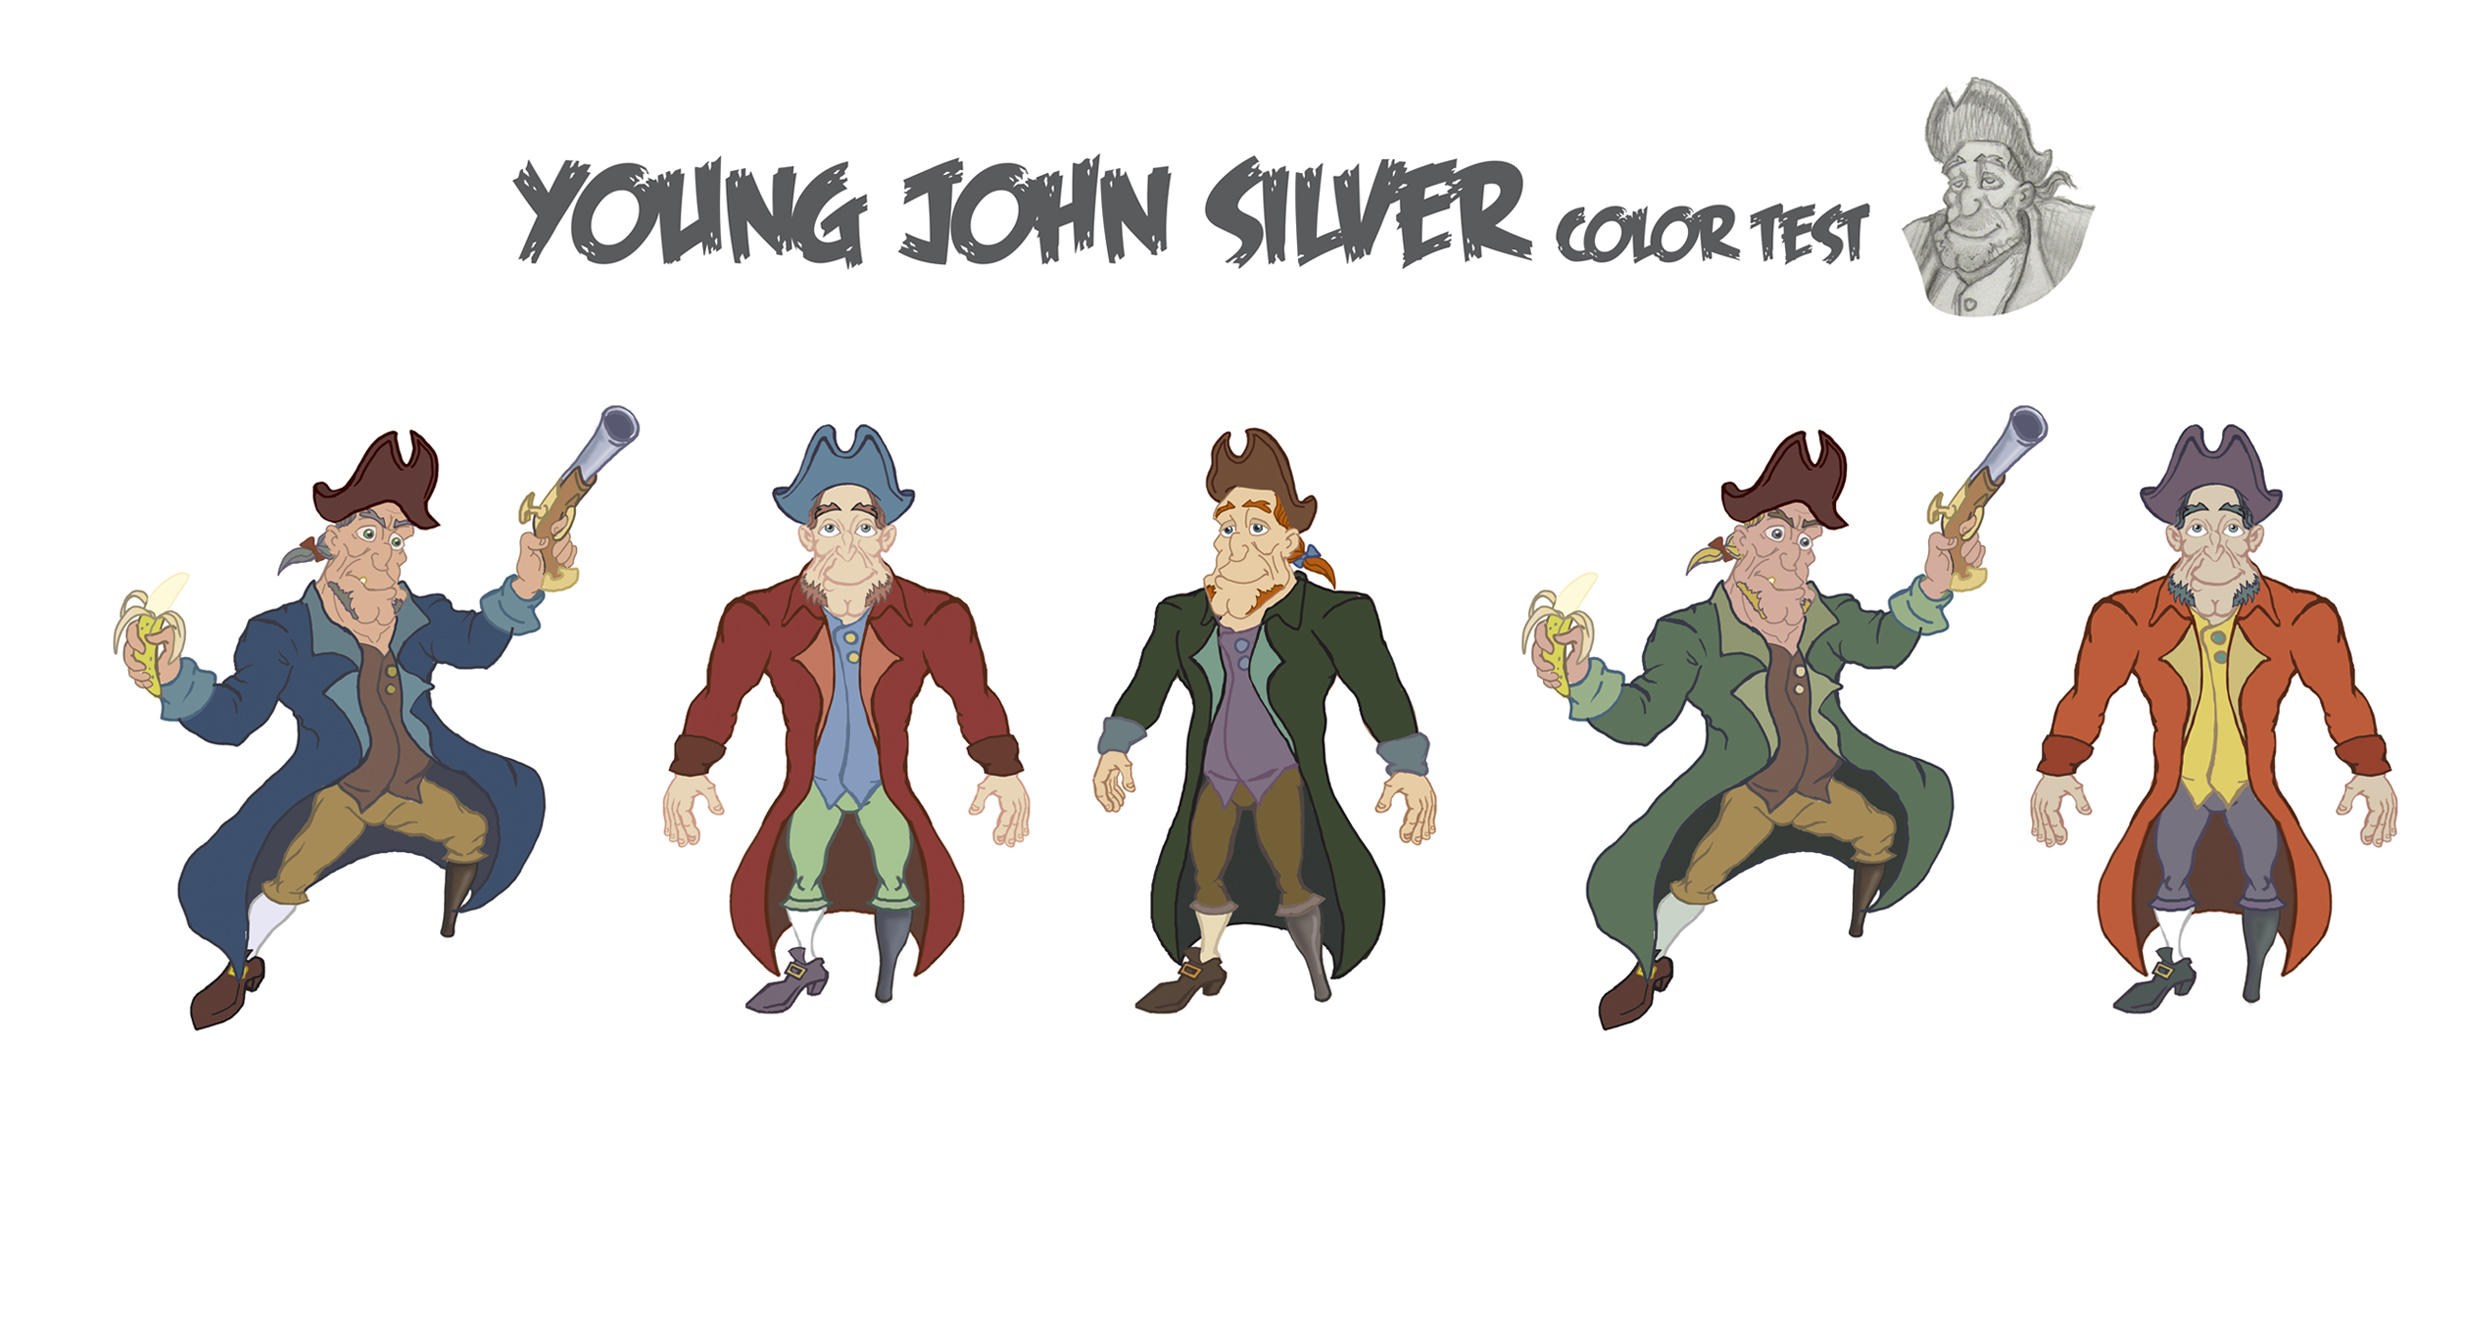 Pirate John Silver Color Test